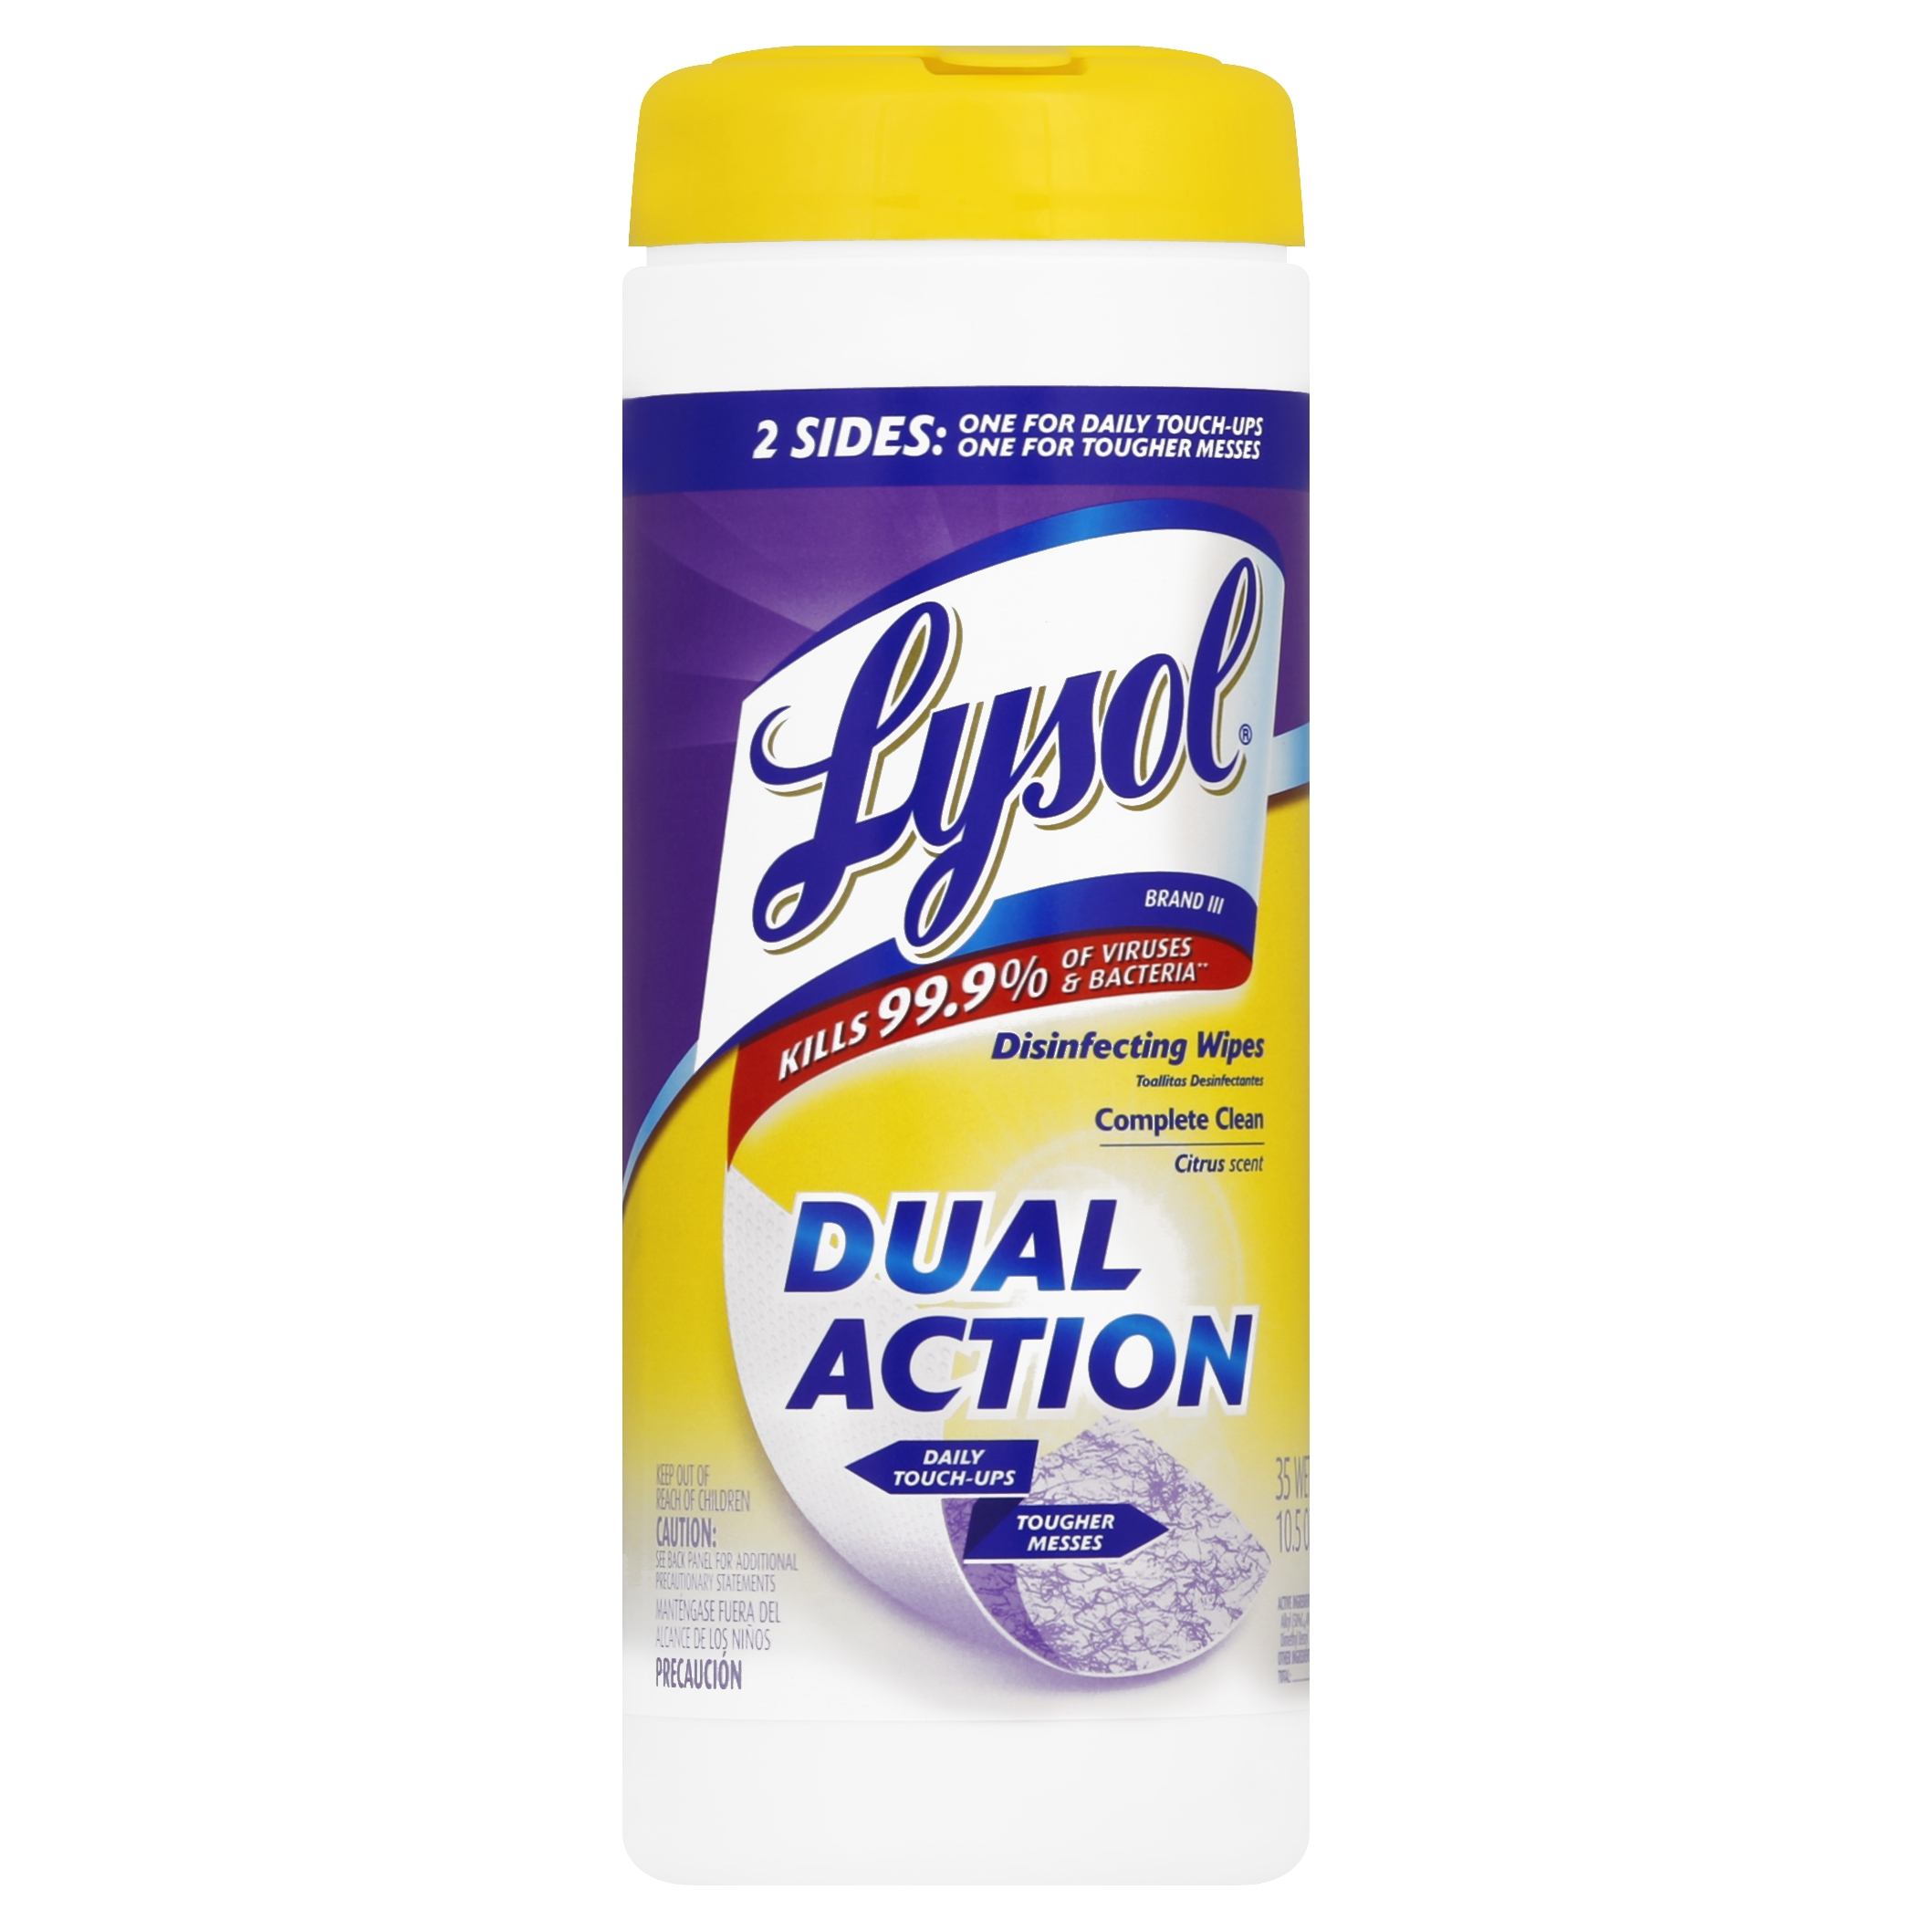 Lysol Dual Action Disinfecting Wipes, Citrus, 35 Count